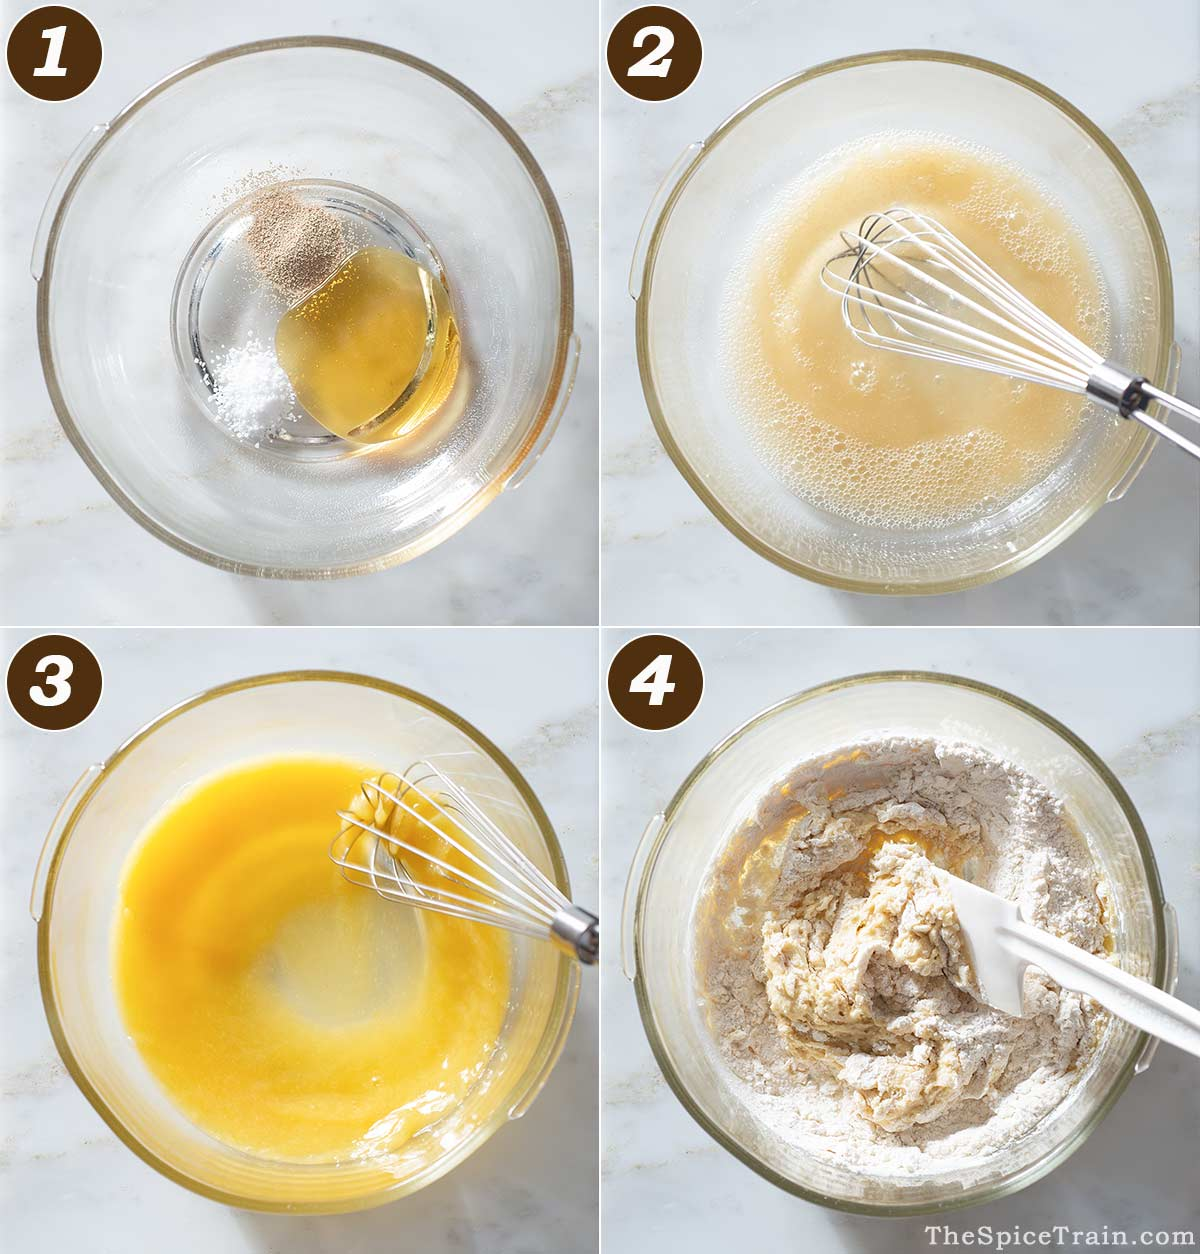 Yeast dough being prepared in four steps.